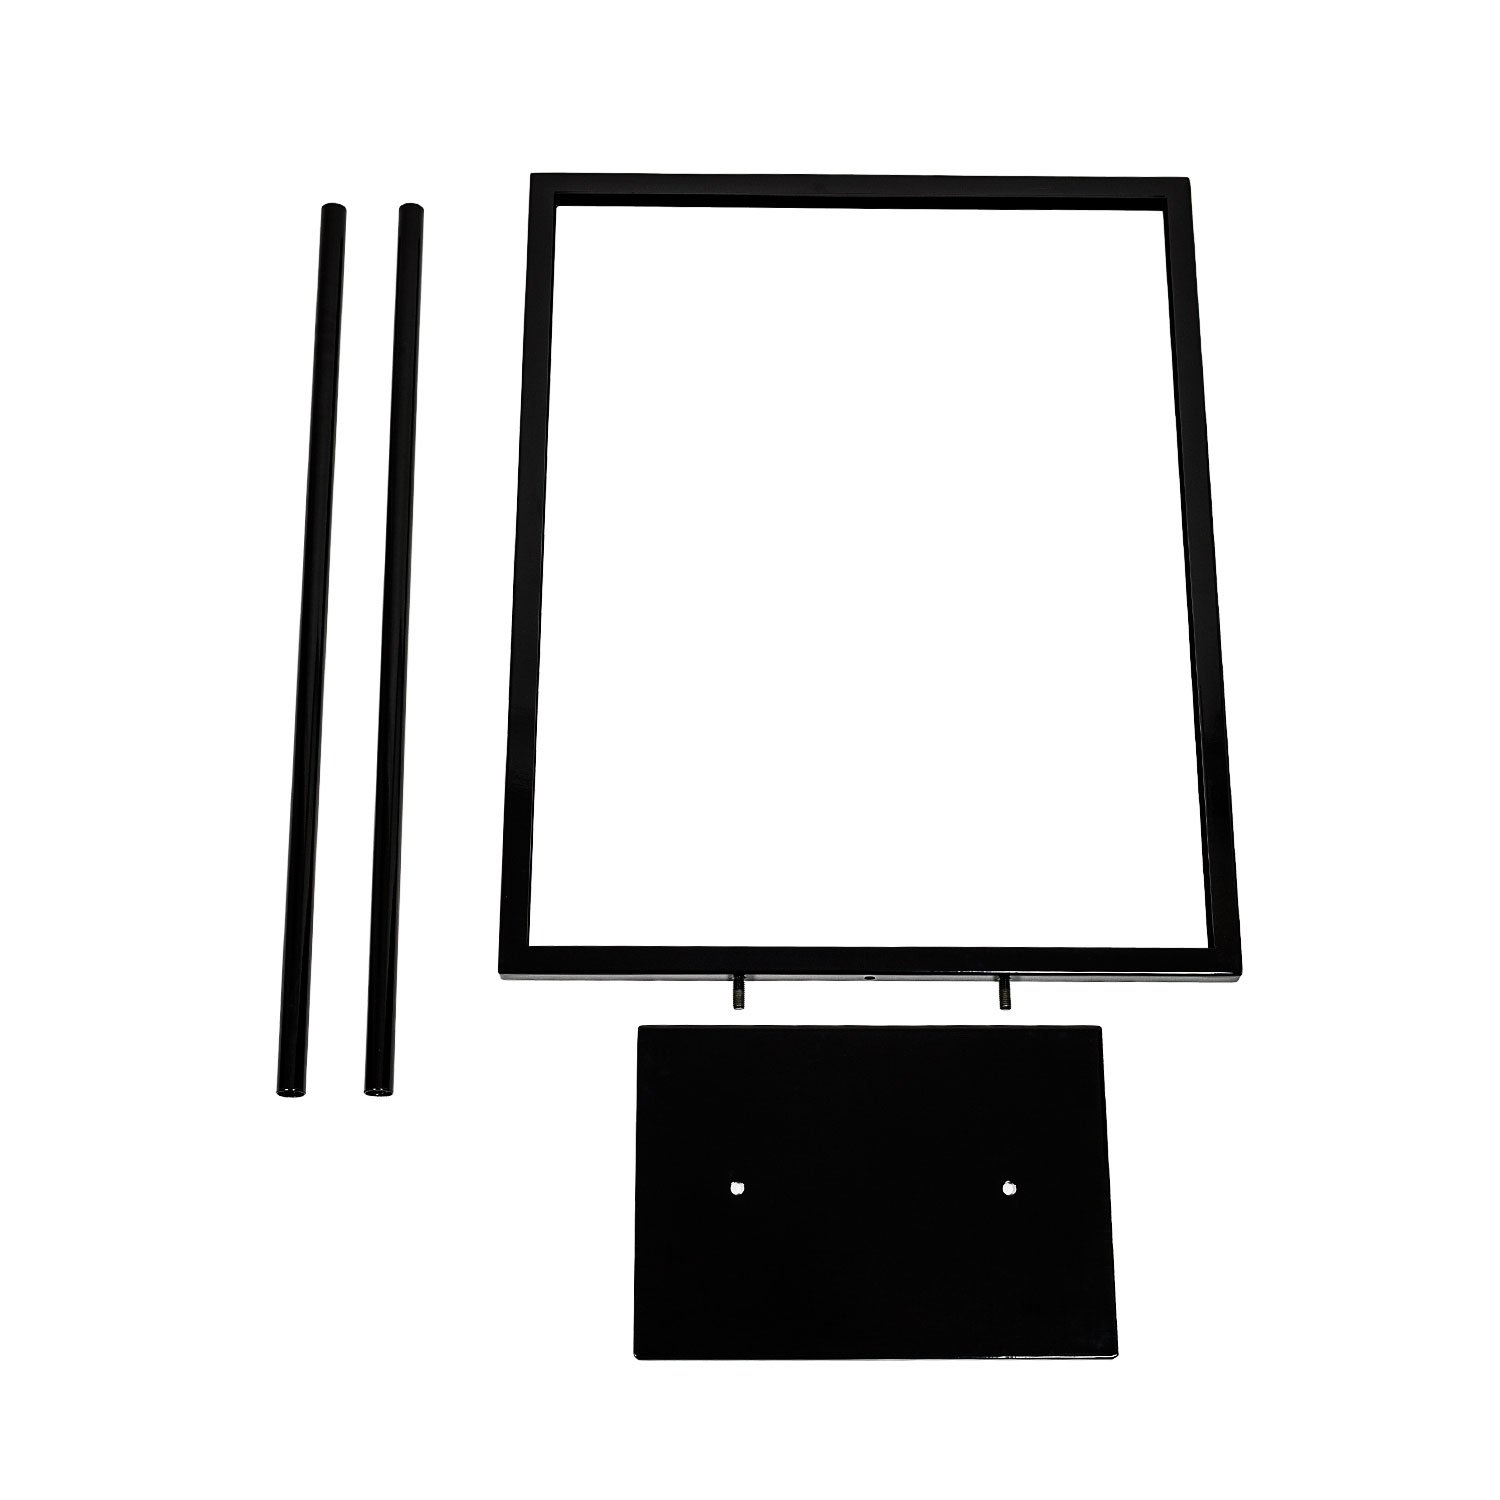 Source One Deluxe 22 x 28, 11 x 17, 8 1/2 x 11 Inch Floor Standing Sign Holders Multiple Colors Black, White & Gray Heavy Duty Weighted Metal (22 x 28 Inch, Black) by SOURCEONE.ORG (Image #3)